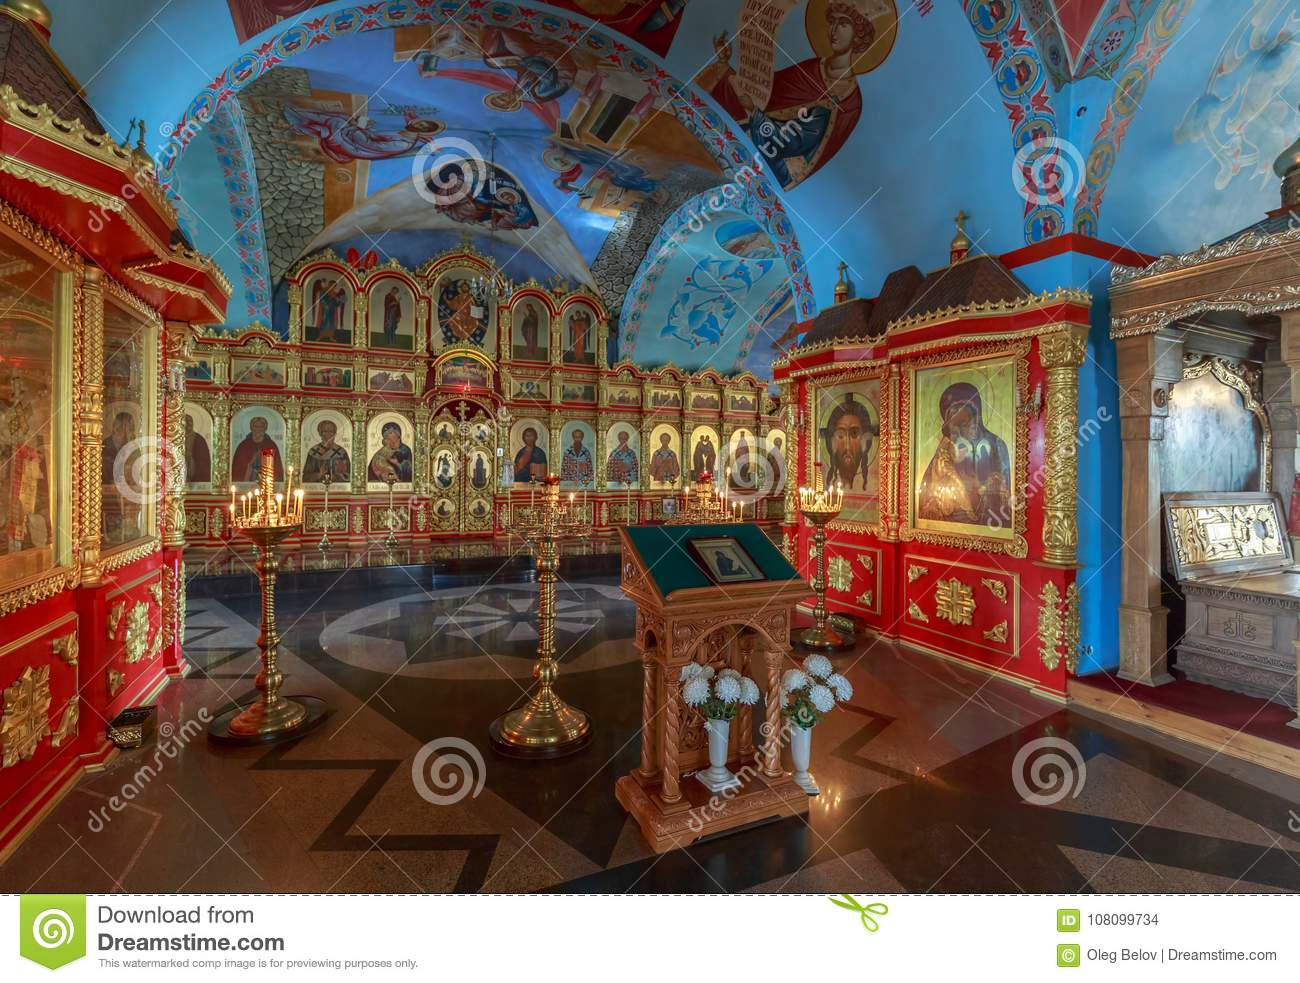 Astrakhan, Assumption Cathedral on the territory of the Astrakhan Kremlin: history, description, address 18